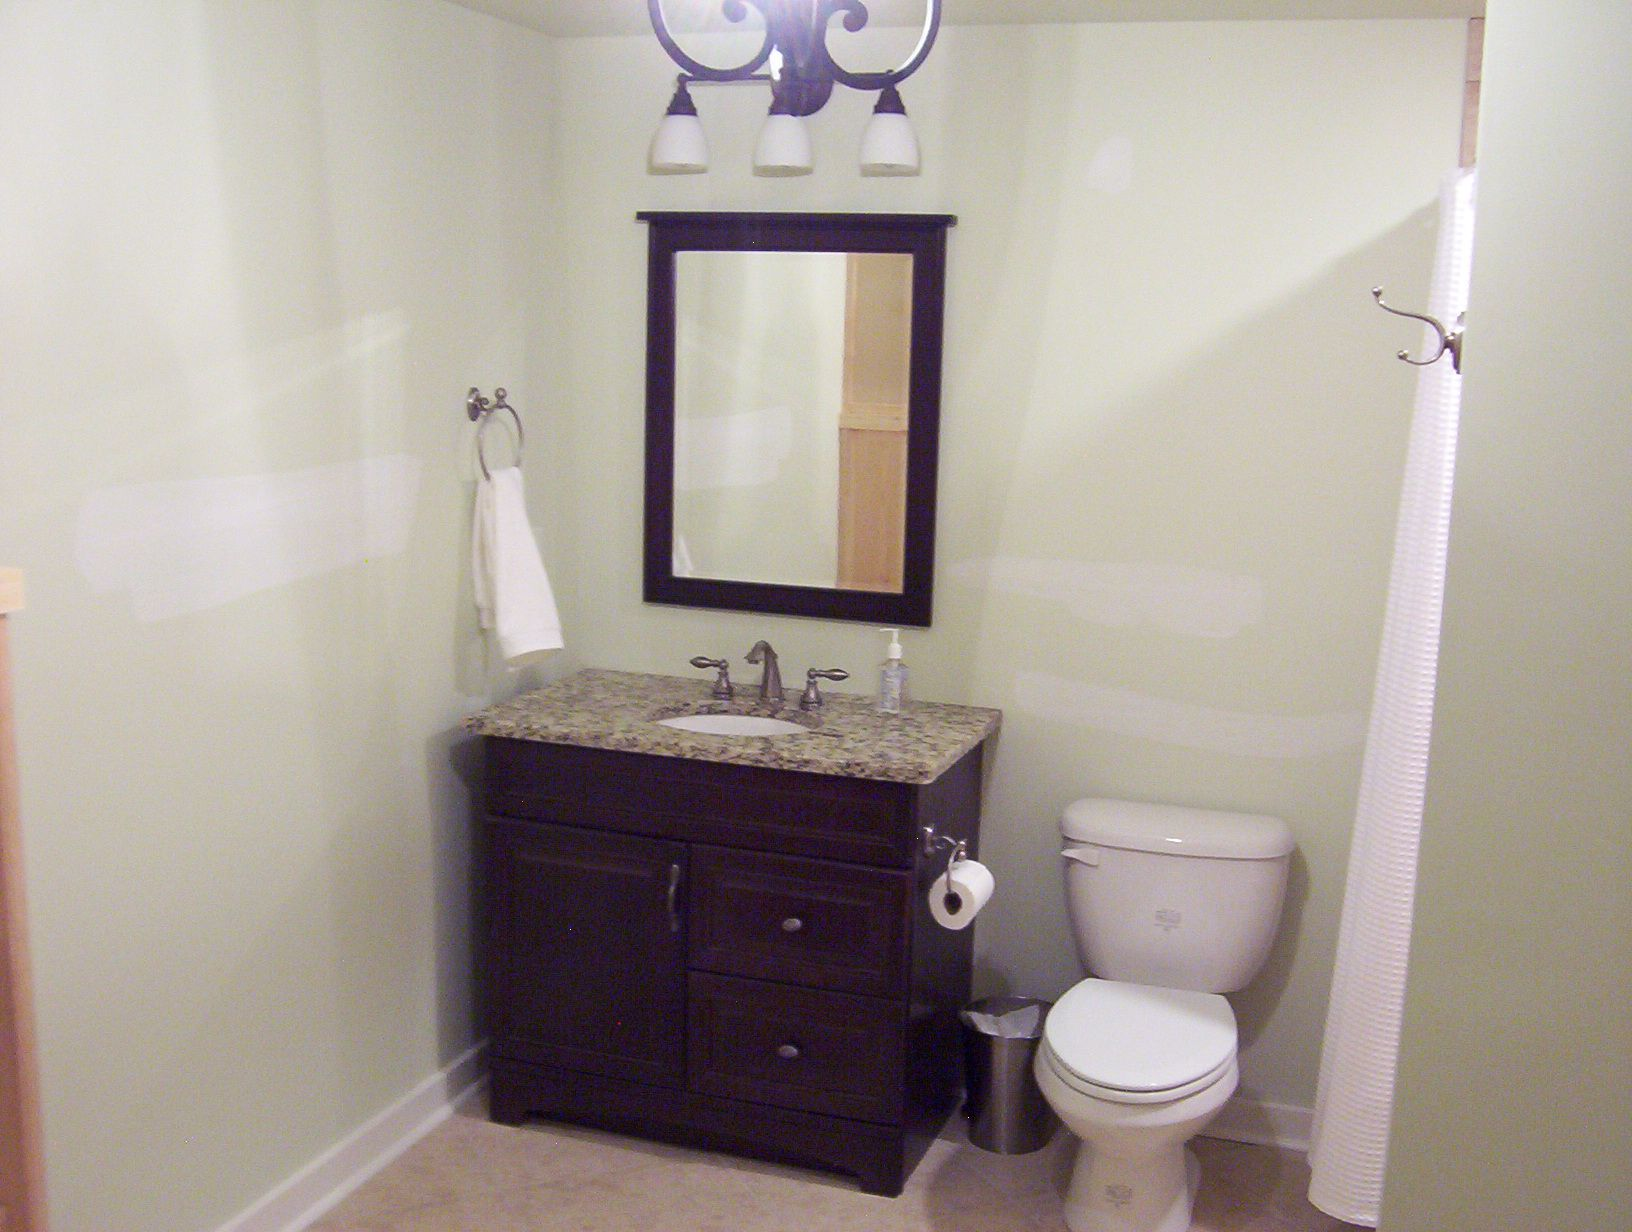 Simple bathroom decorations - Simple Bathroom Idea Http Www Kittencarcare Info Simple